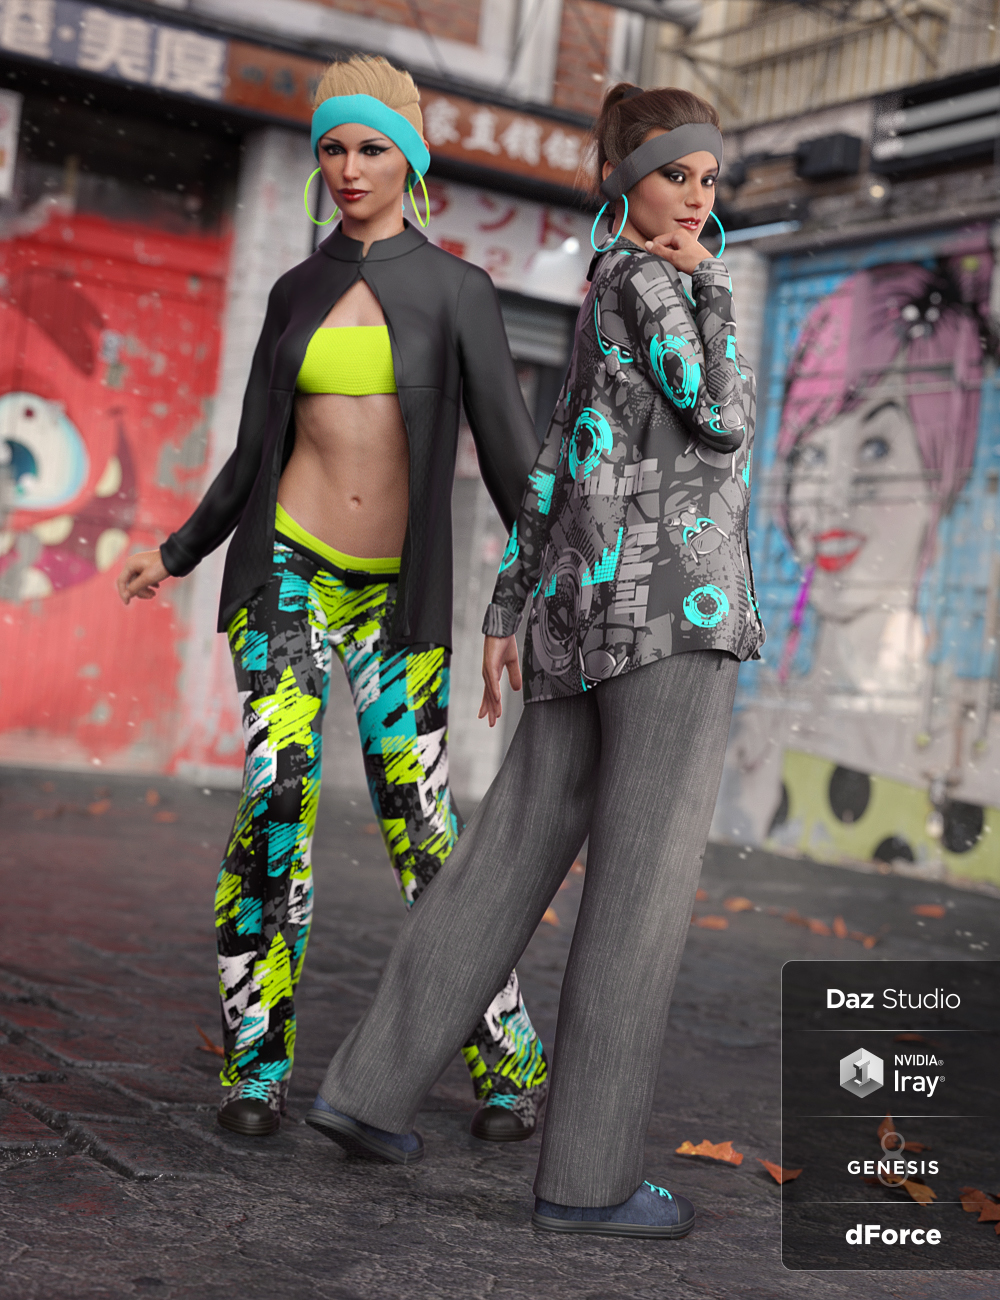 dForce Street Smarts Girl Outfit Textures by: Moonscape GraphicsSade, 3D Models by Daz 3D